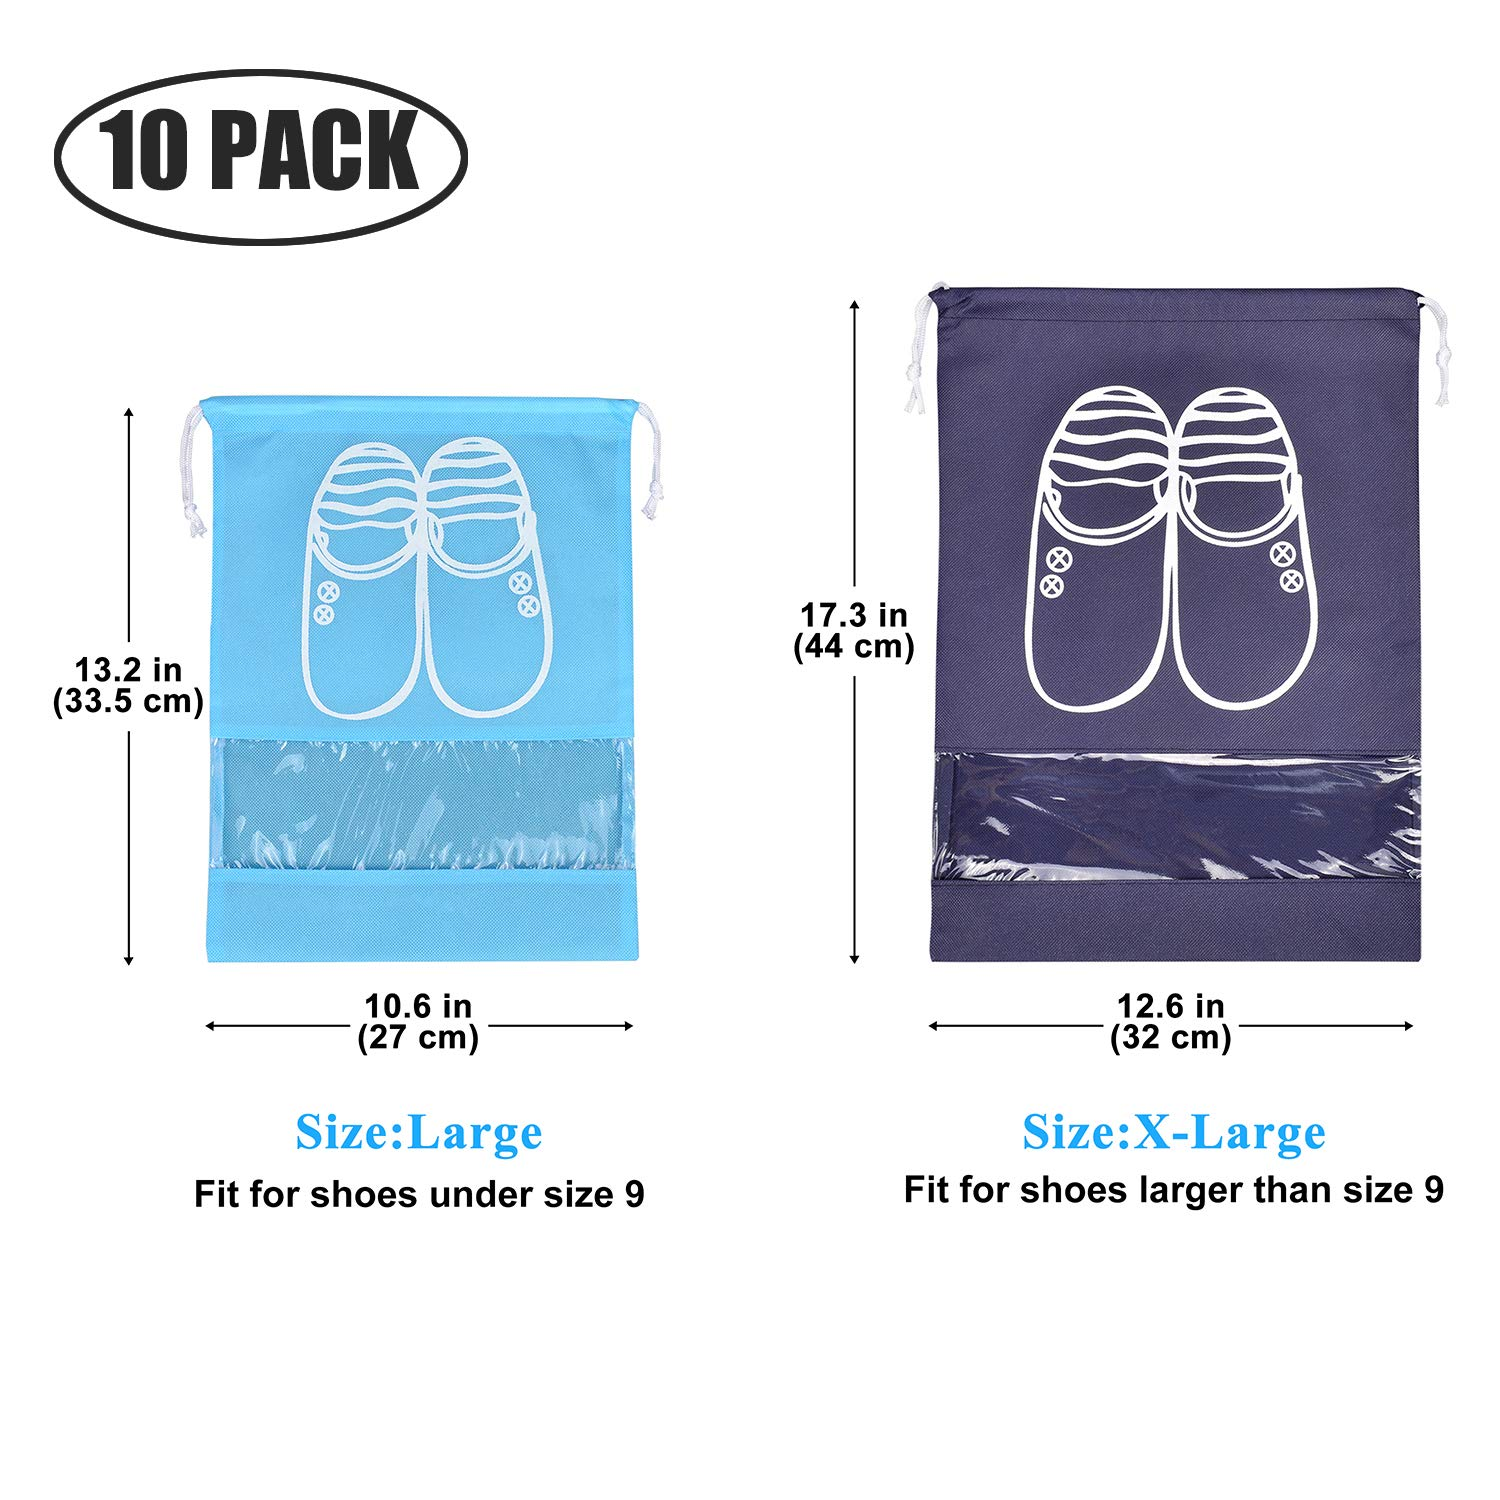 10 Pcs Travel Dust-proof Shoe Bags with Drawstring and Transparent Window Shoe Organizer Space Saving Storage Bags(5pcs XL and 5pcs L) by TGbranch (Image #2)